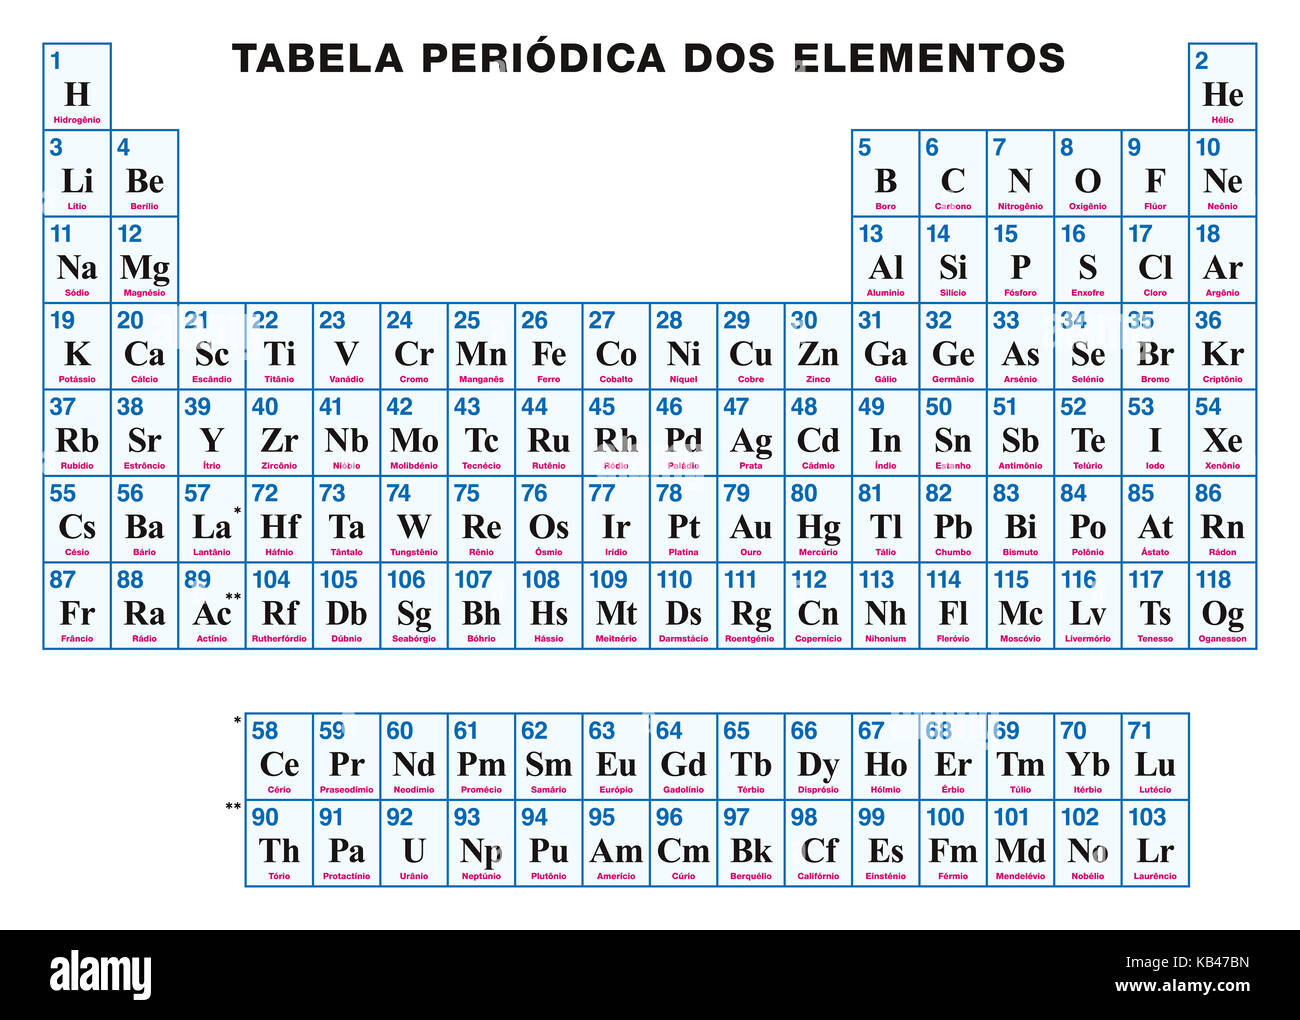 Periodic table of the elements portuguese tabular arrangement of periodic table of the elements portuguese tabular arrangement of chemical elements with atomic numbers symbols and names 118 confirmed elements urtaz Image collections